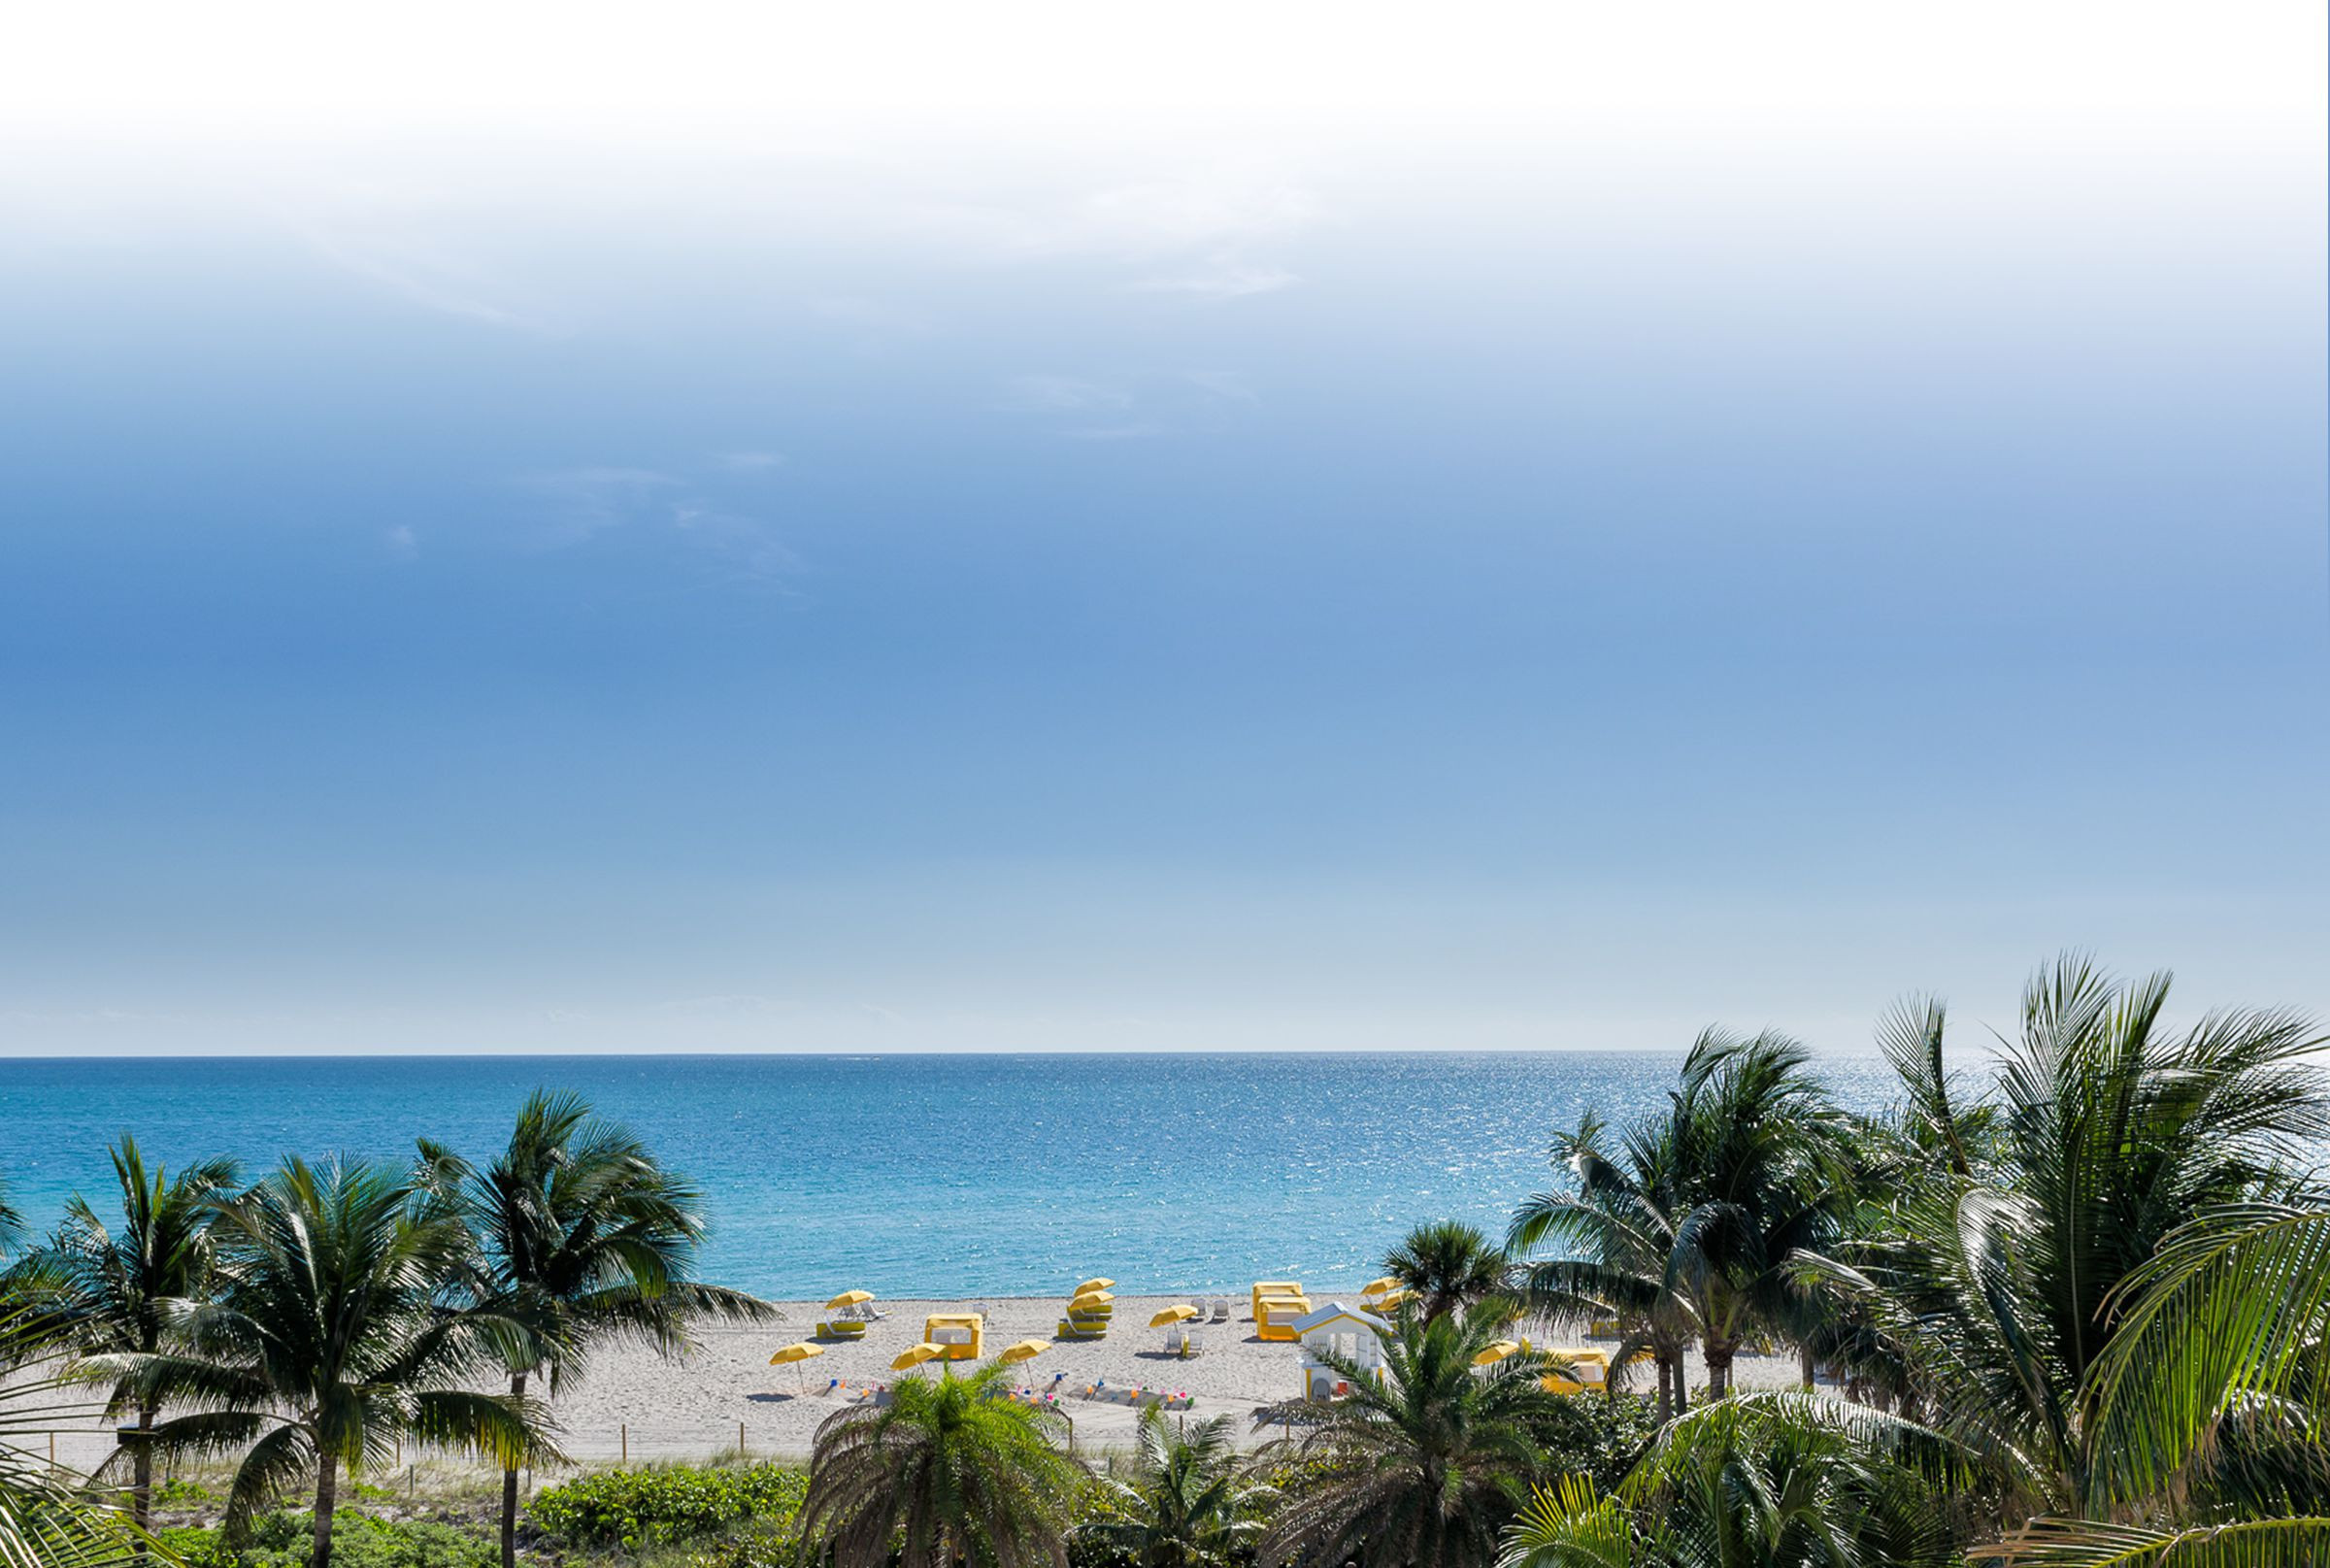 Oceanfront resort overlooking white-sand beach and Atlantic Ocean | Westgate South Beach Oceanfront Resort